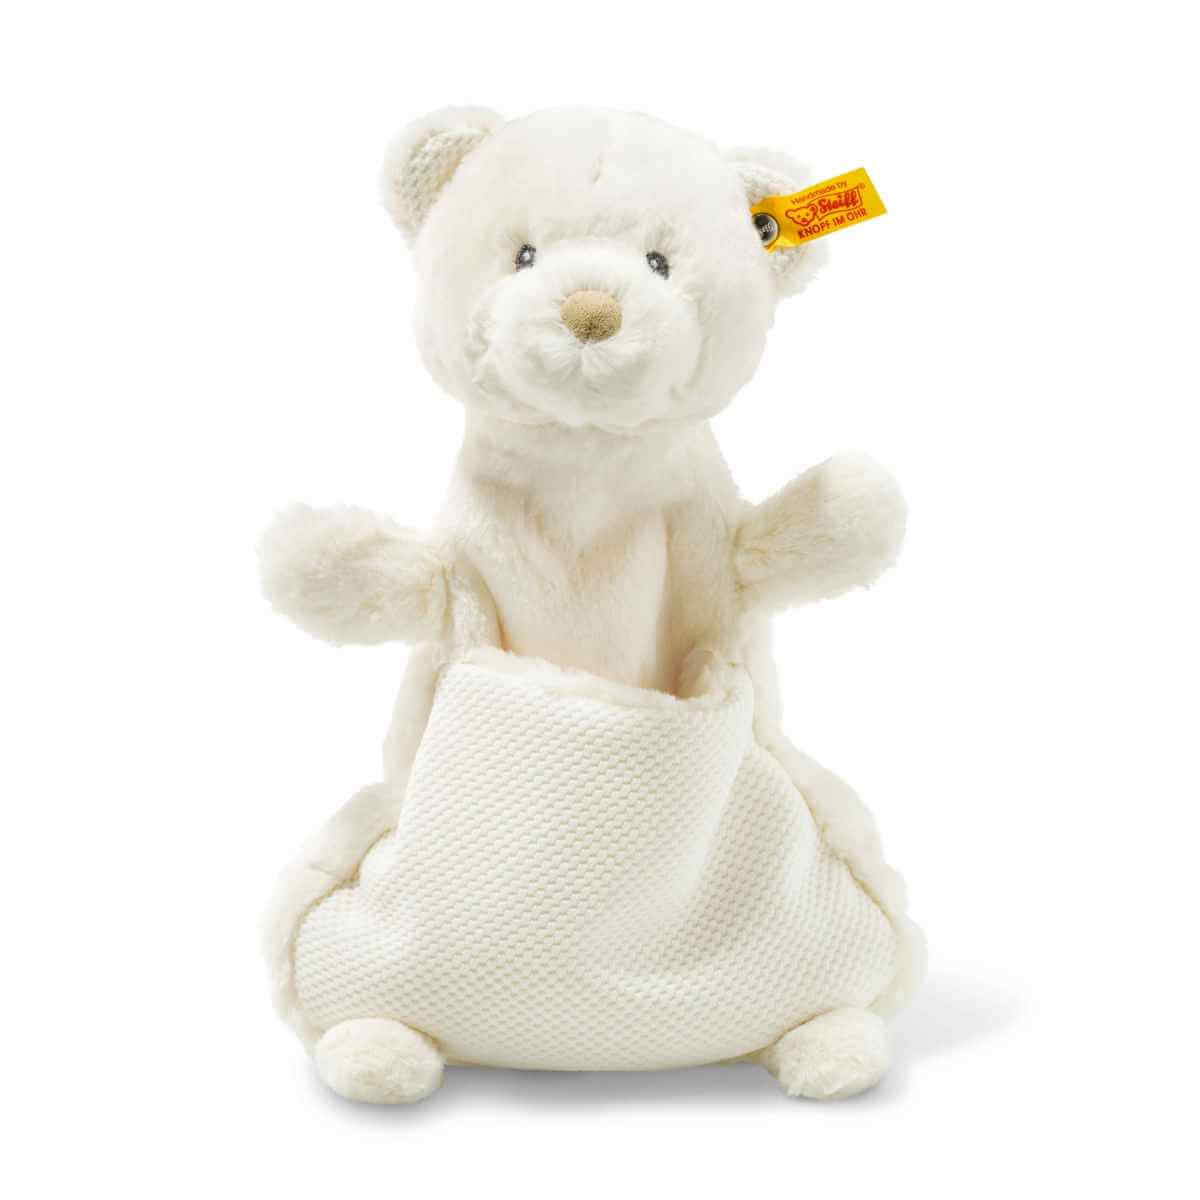 Doudou Ursul Giggles 27cm (Soft Cuddly Friends)